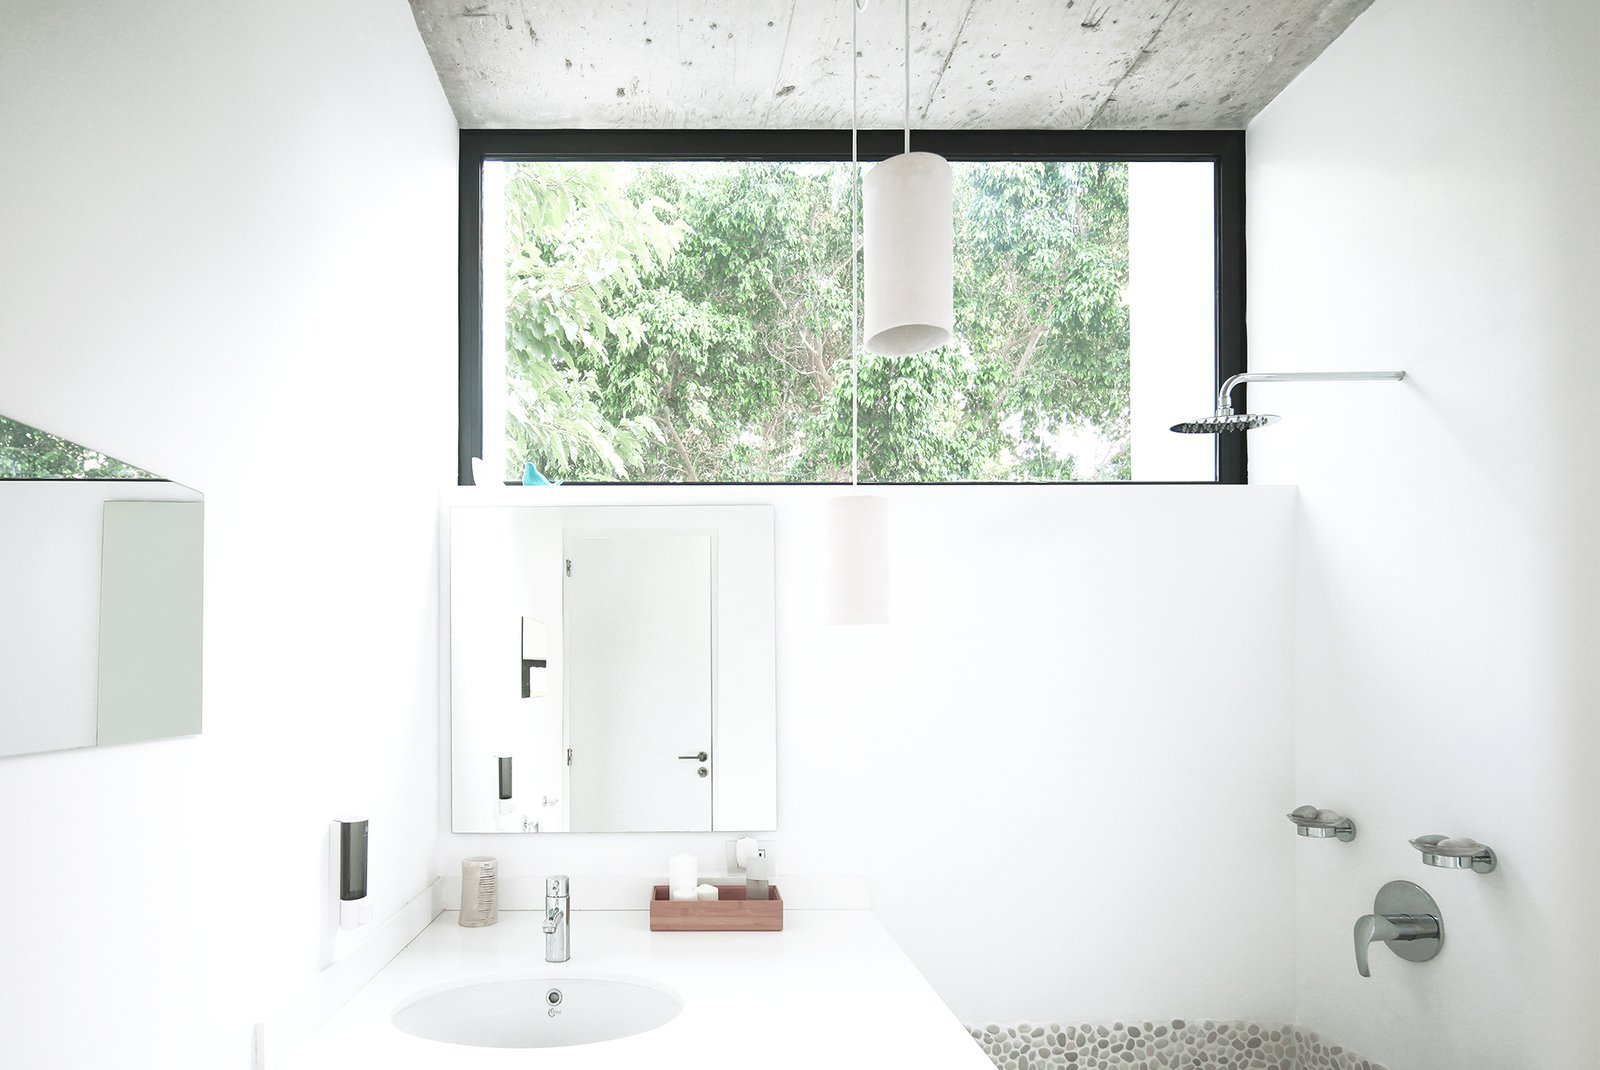 The bathroom maintains a sense of outdoor living with the large clerestory window.